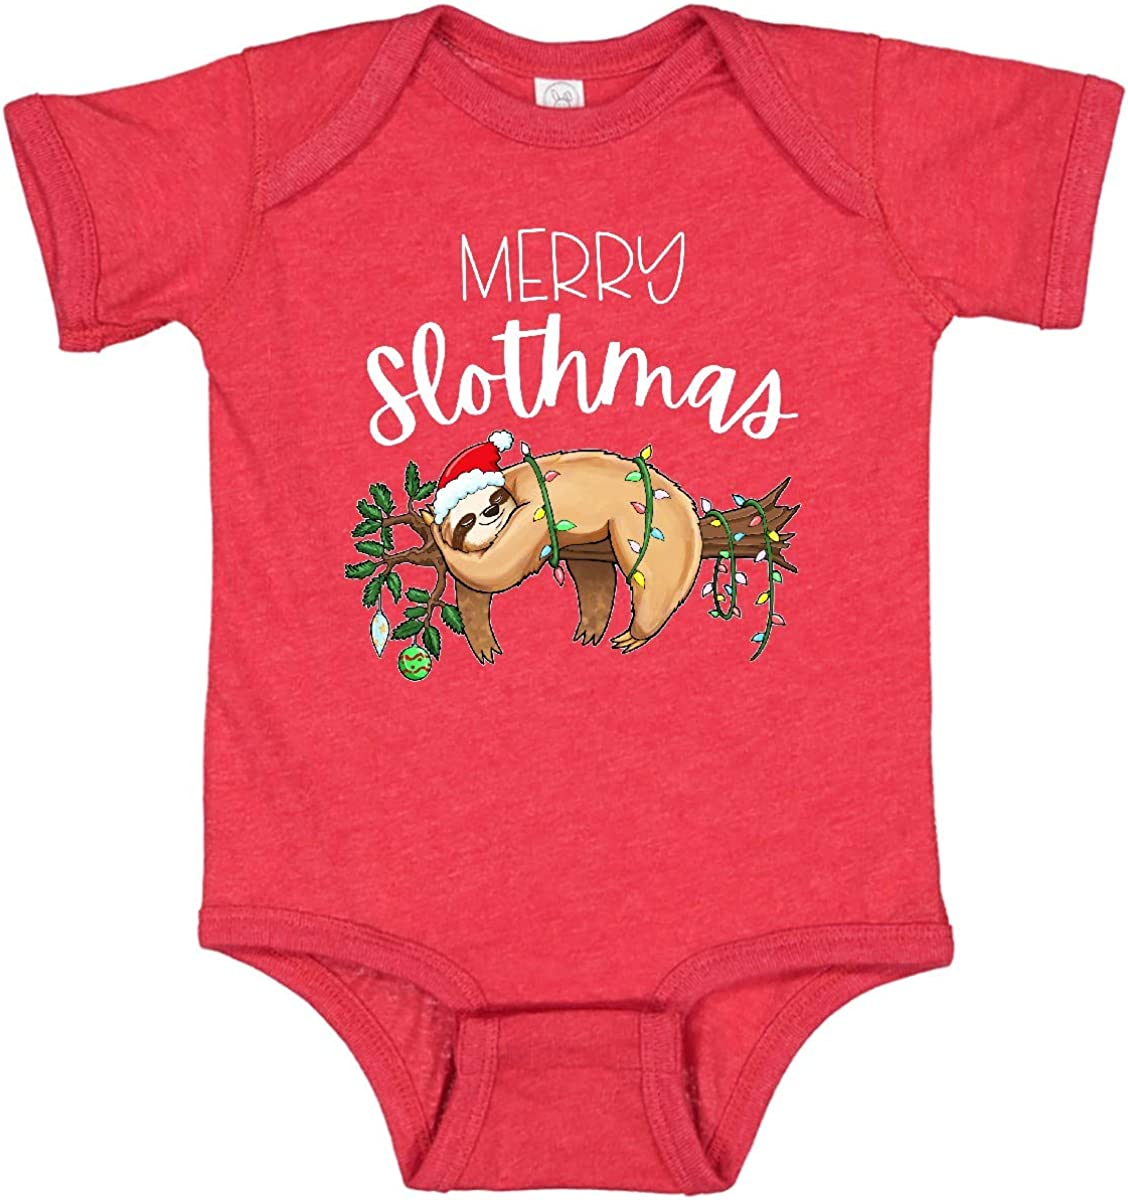 inktastic Merry In a popularity Slothmas Cute Christmas in Sloth with Lights Hat Special sale item